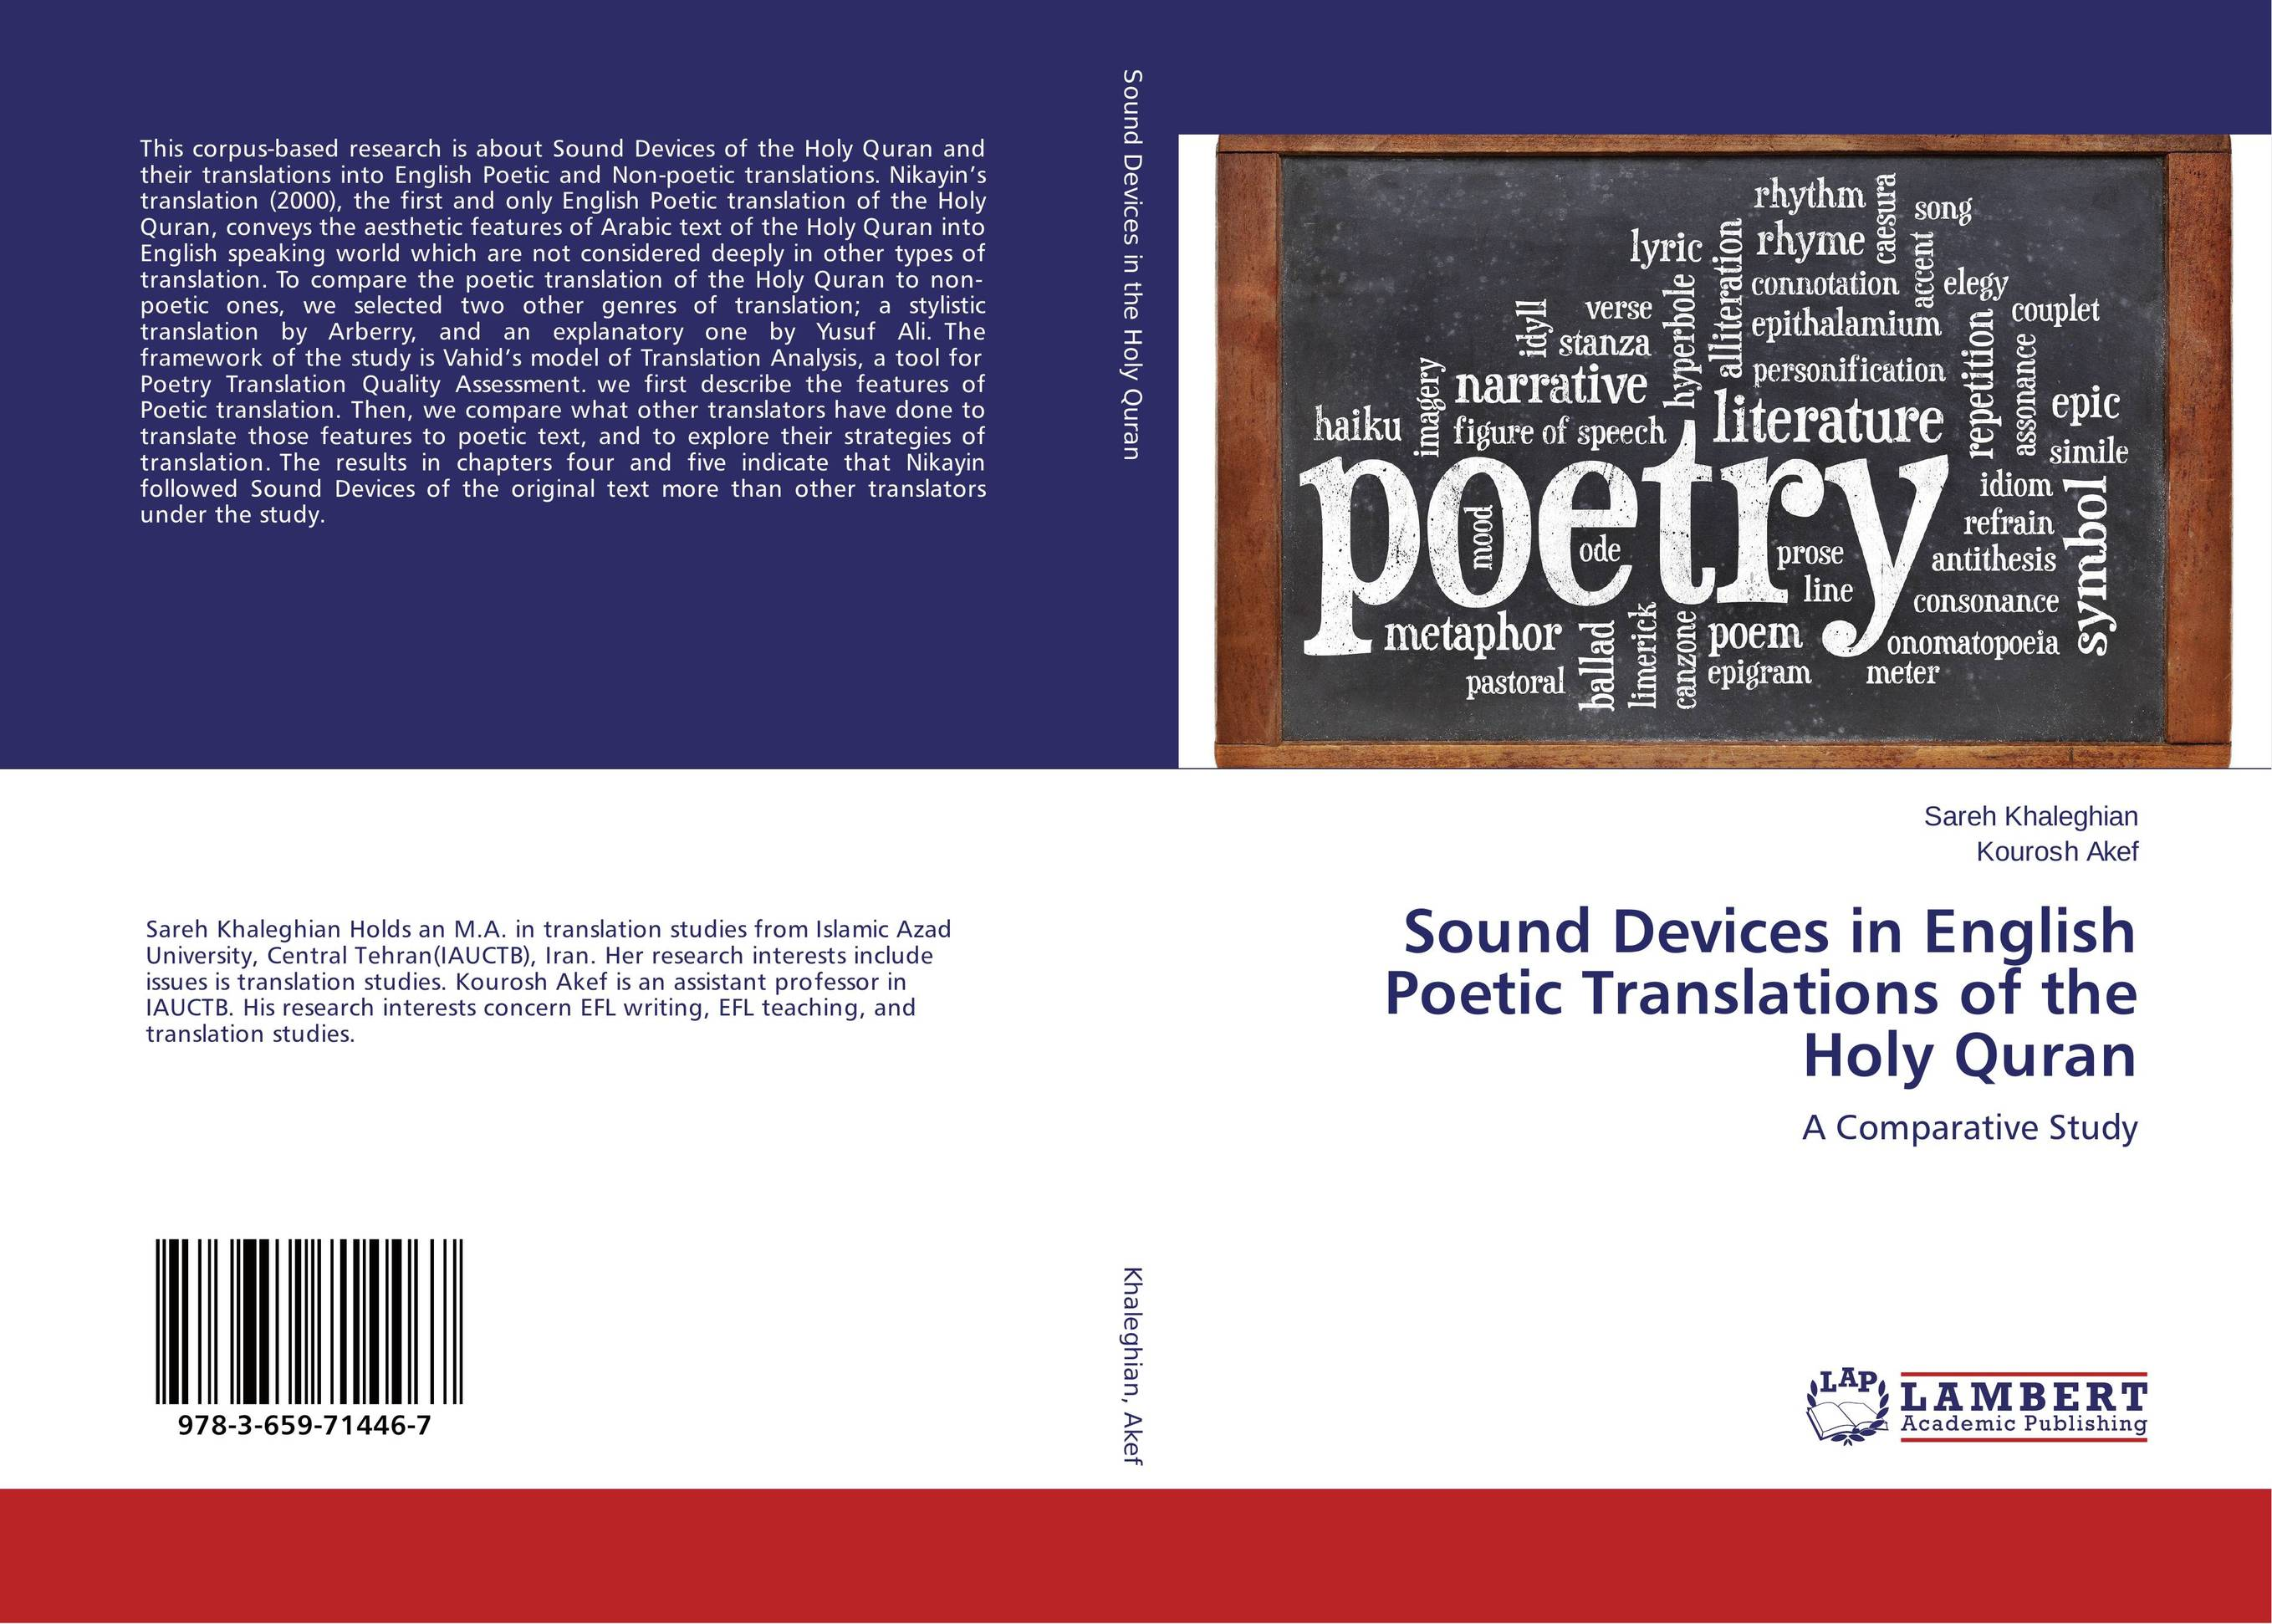 Sound Devices in English Poetic Translations of the Holy Quran pooria alirezazadeh an analytical study of translation of stream of consciousness